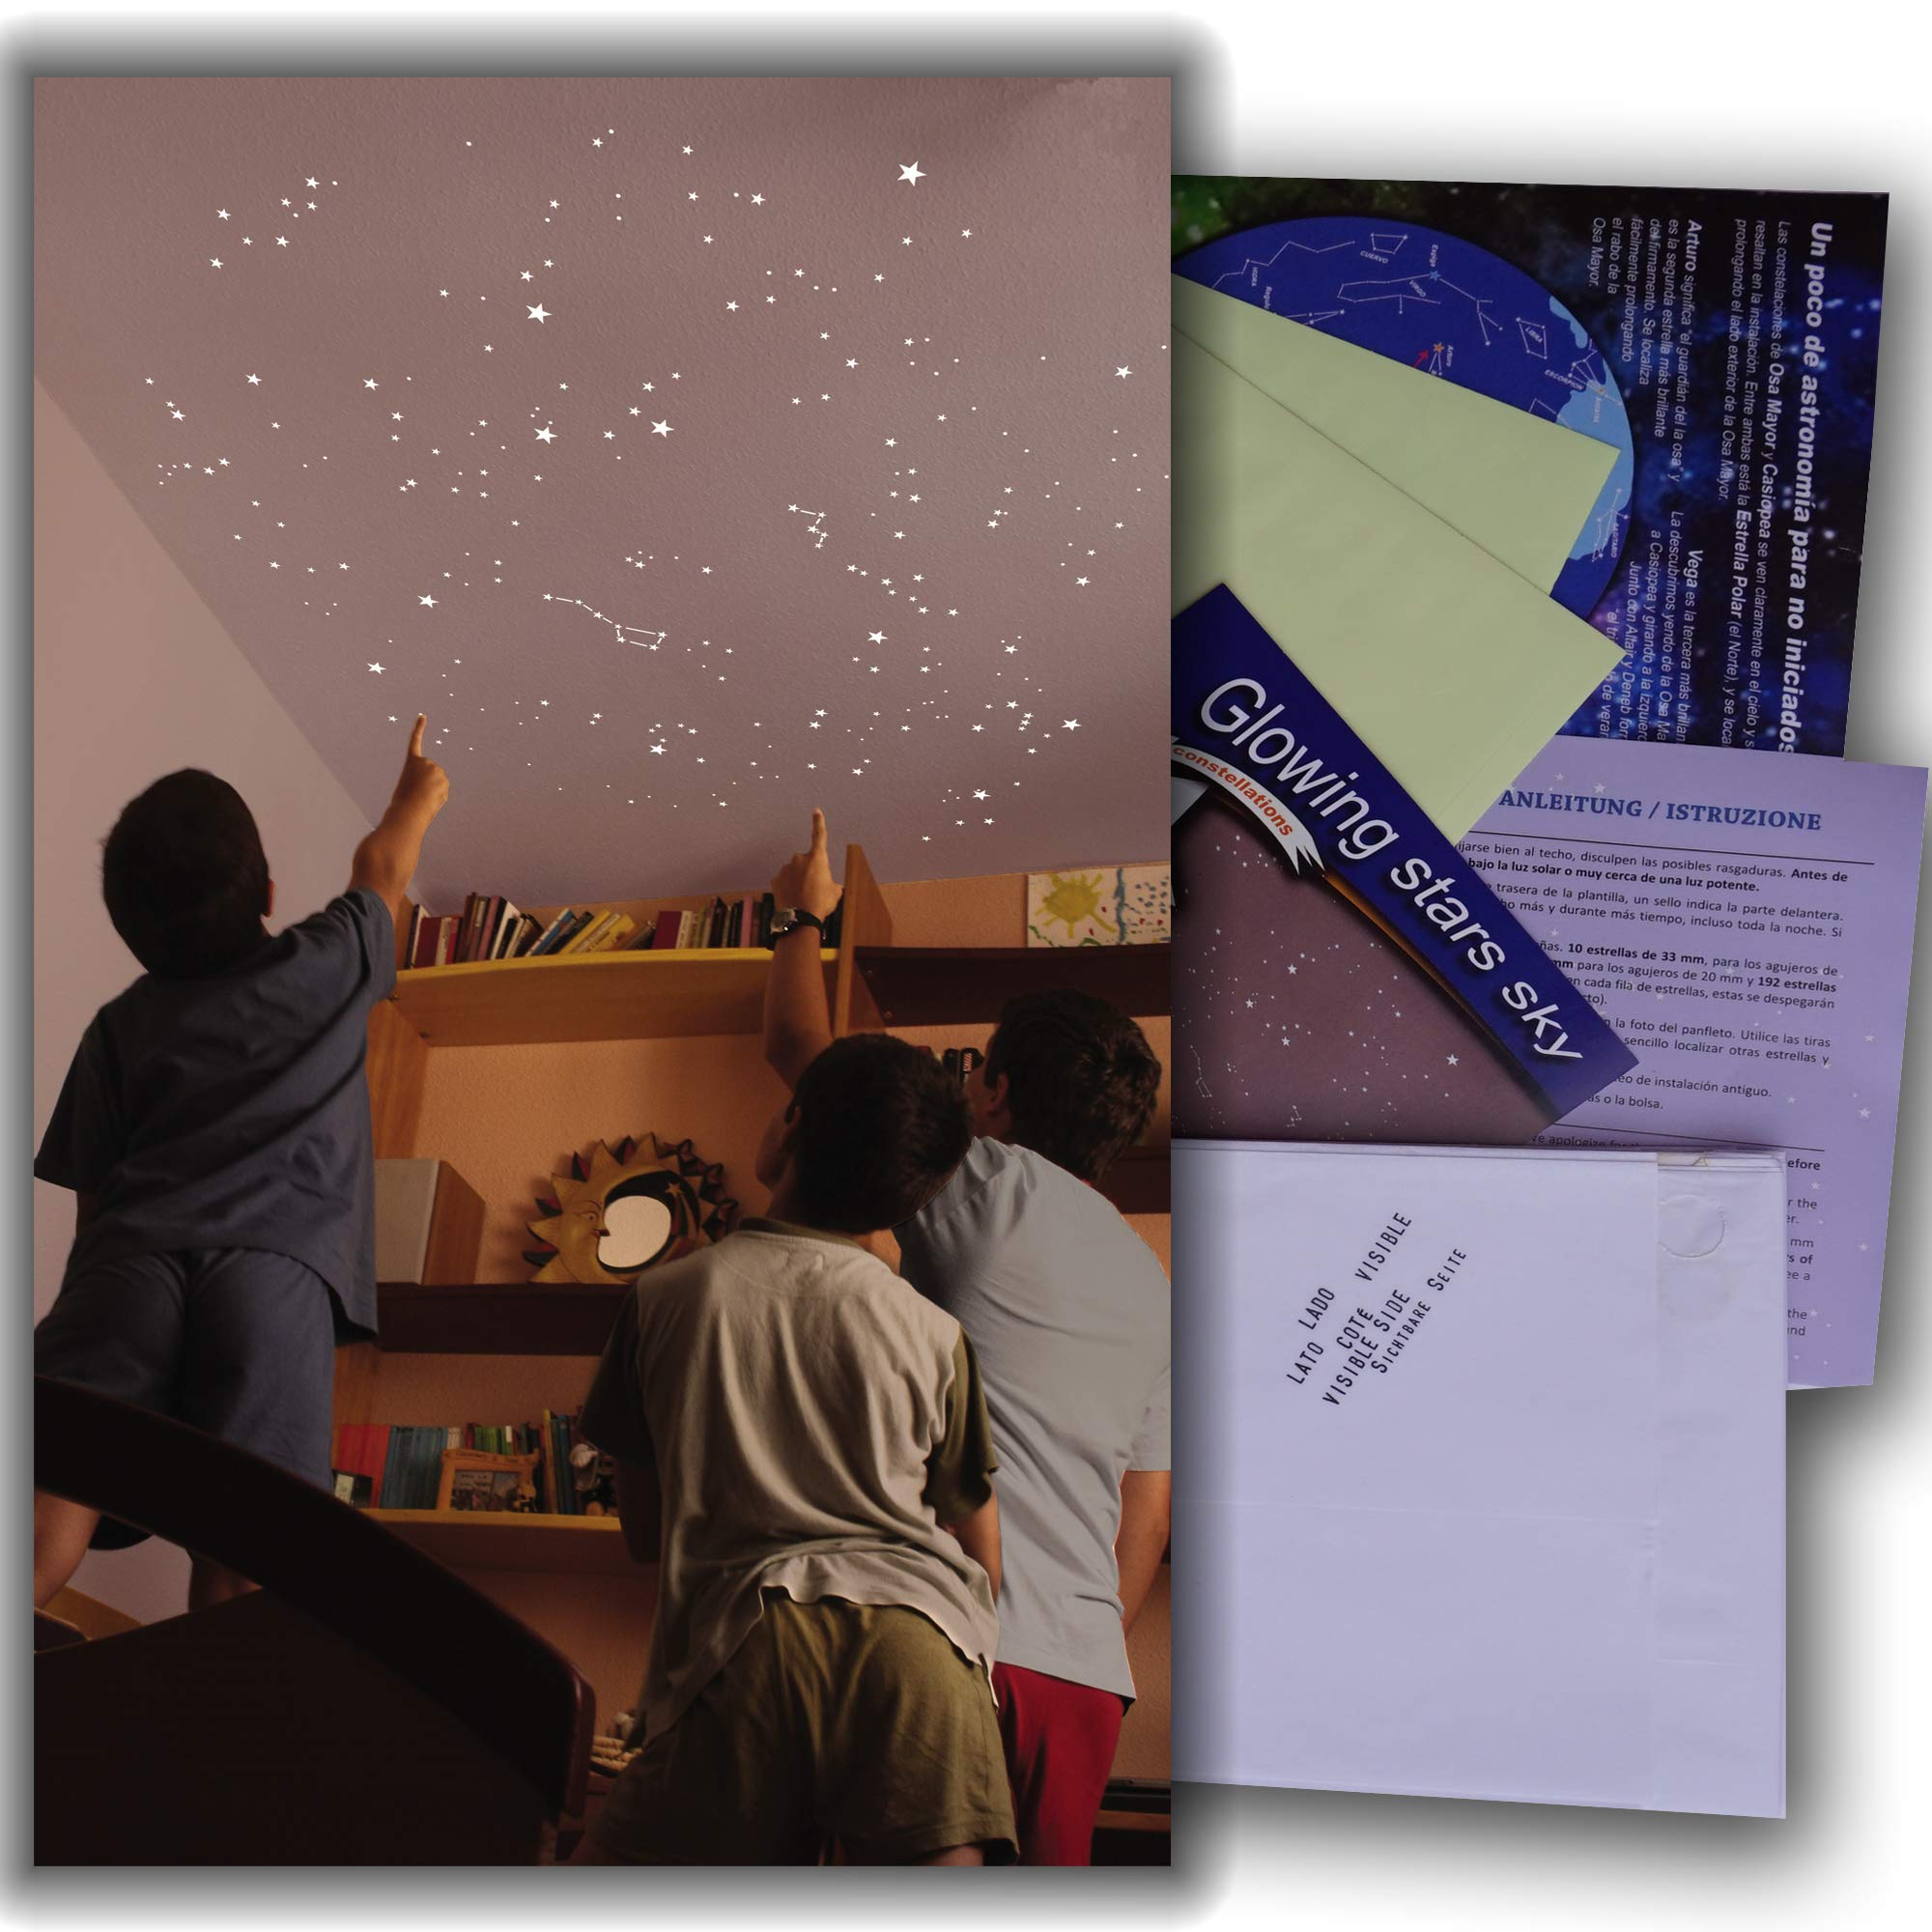 Kit of 270 fluorescent STARS + STENCIL of 2 m². EXACT REPRODUCTION OF THE SKY +2 MAPs with indications. Astronomy on ceiling or wall. Phosphorescent stickers. Glow in the dark stars by Encambio Alcrea (Image #1)